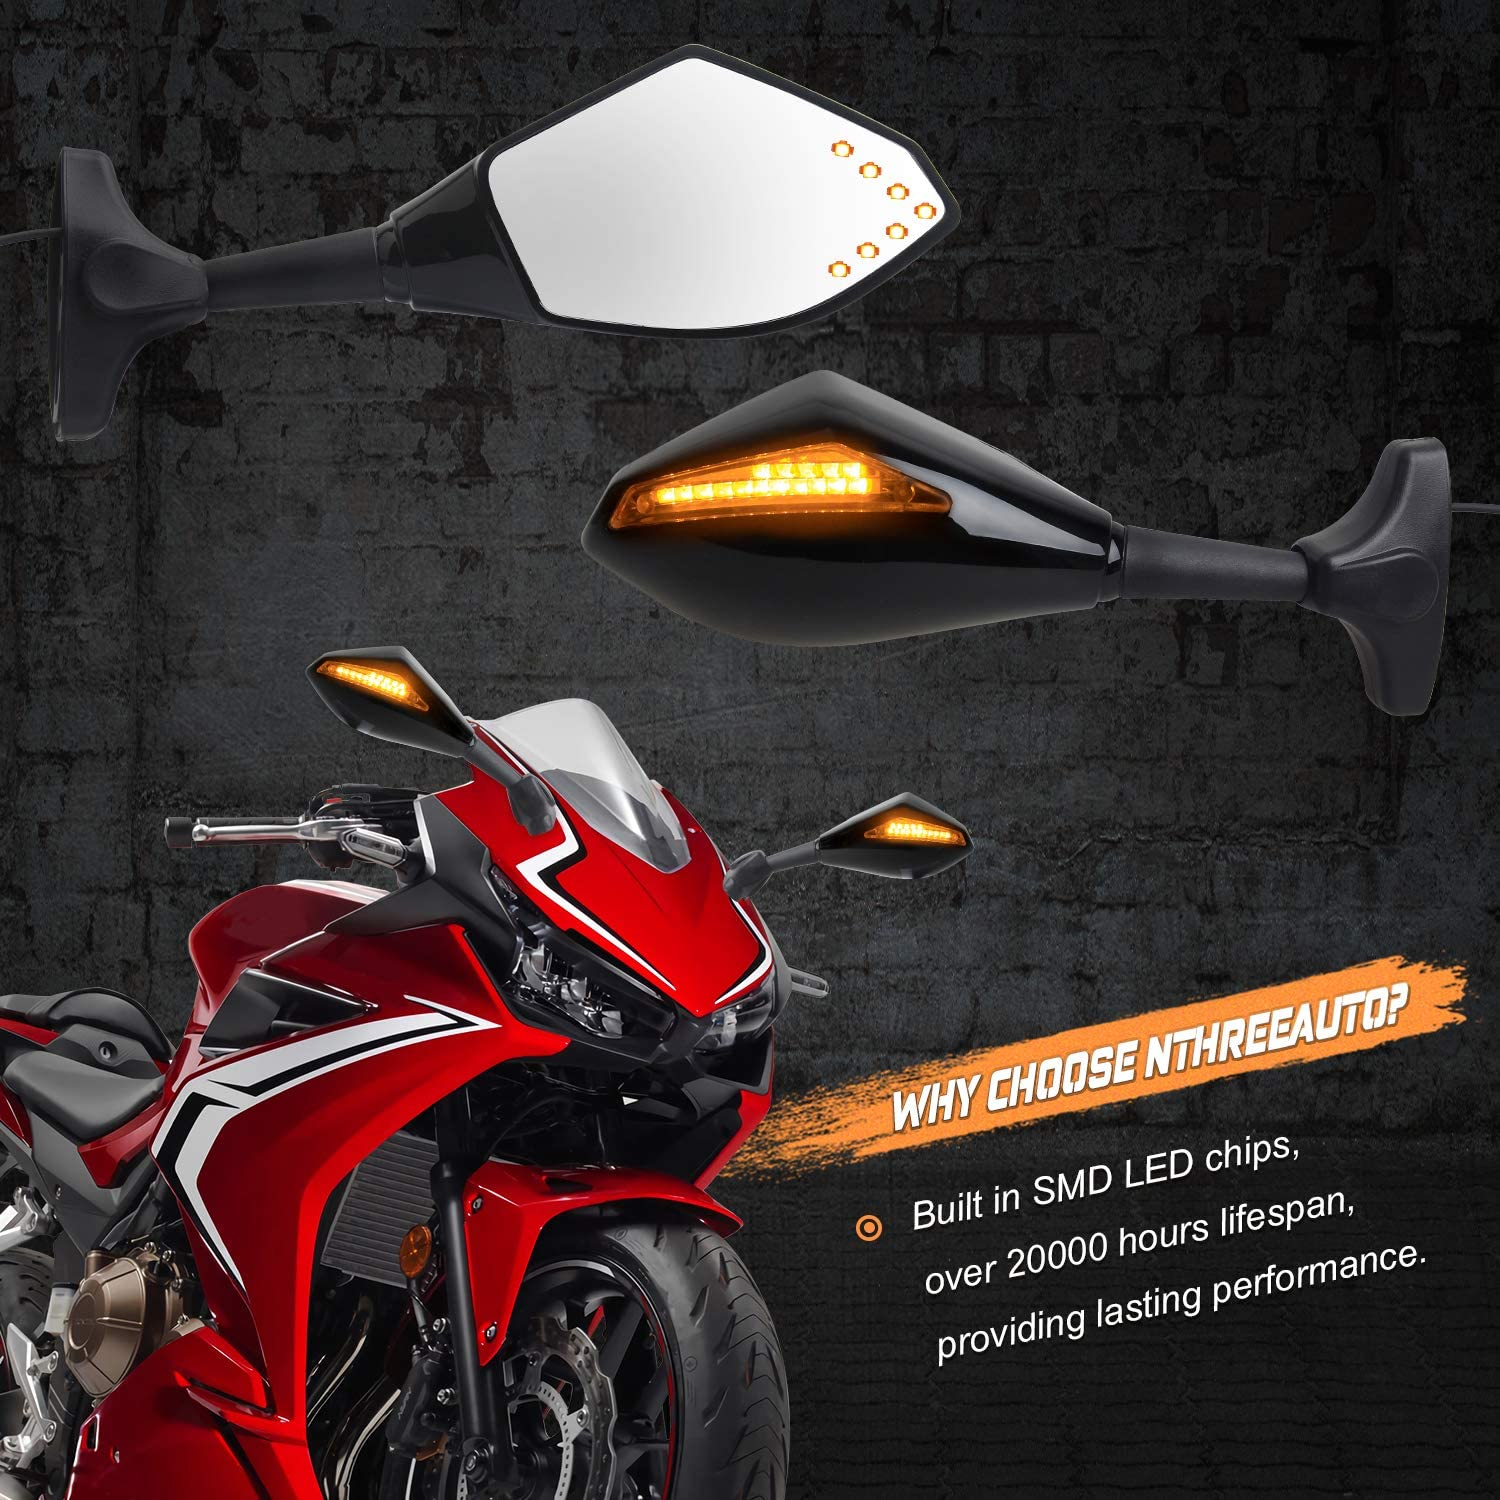 Honda CBR600RR R6 NTHREEAUTO Motorcycle Sway Adjustable Rear Side View Mirrors Integrated with Signal Light Kit Compatible with Suzuki GSXR R6S and Kawasaki ATV Yamaha R1